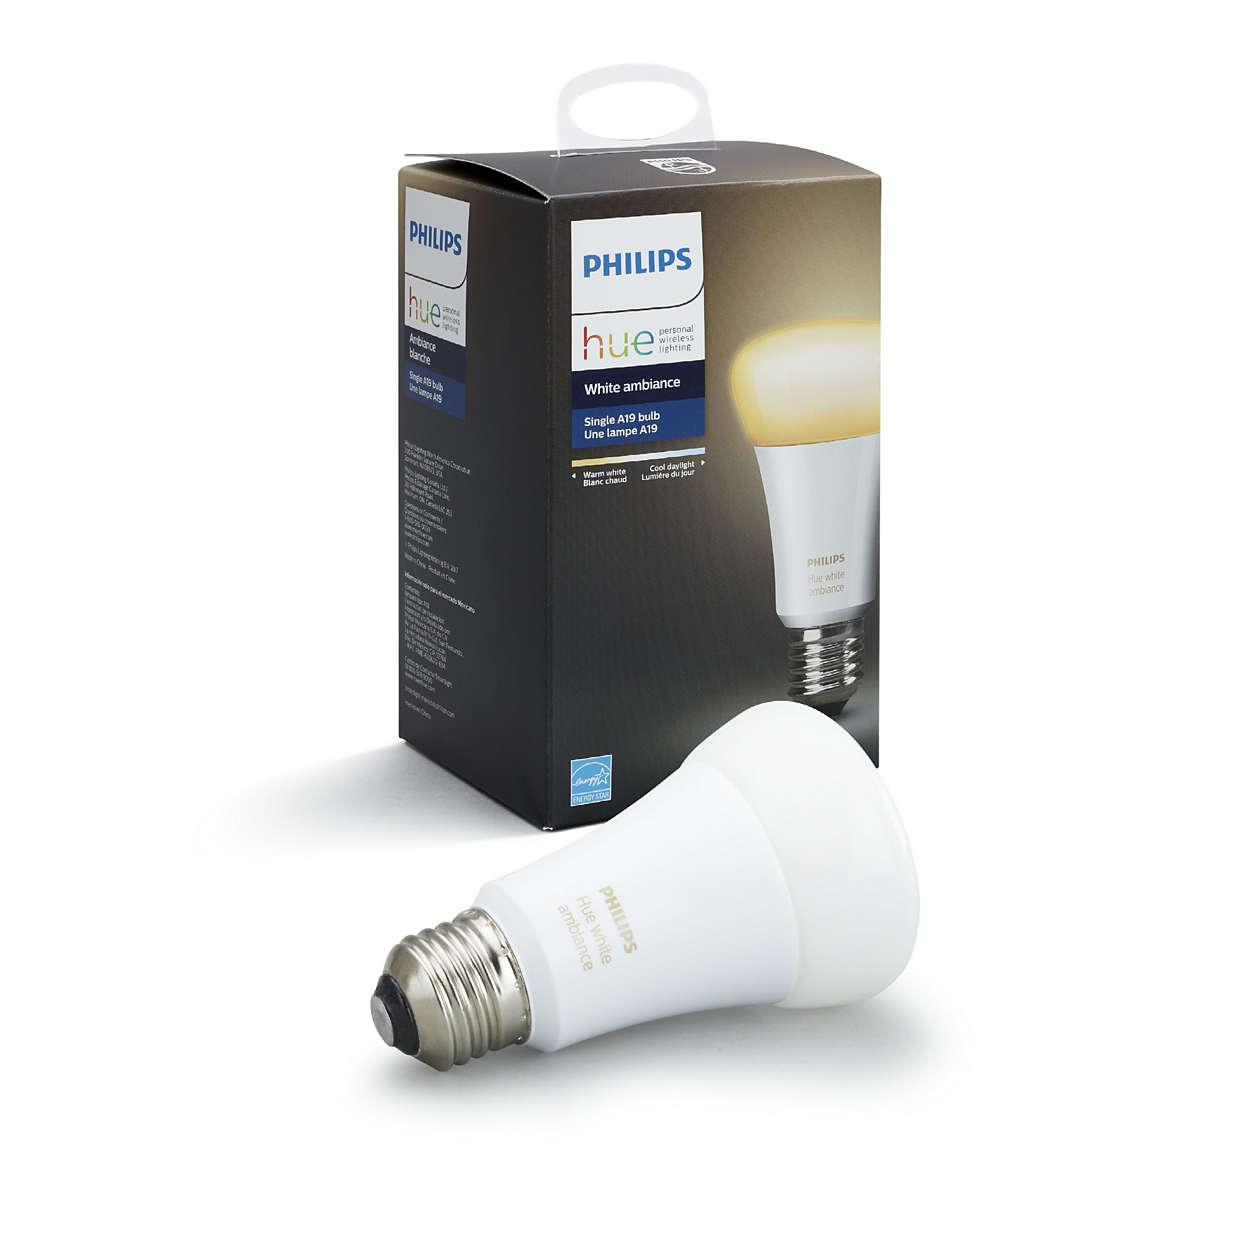 hue white ambiance single bulb e26 046677461003 philips. Black Bedroom Furniture Sets. Home Design Ideas